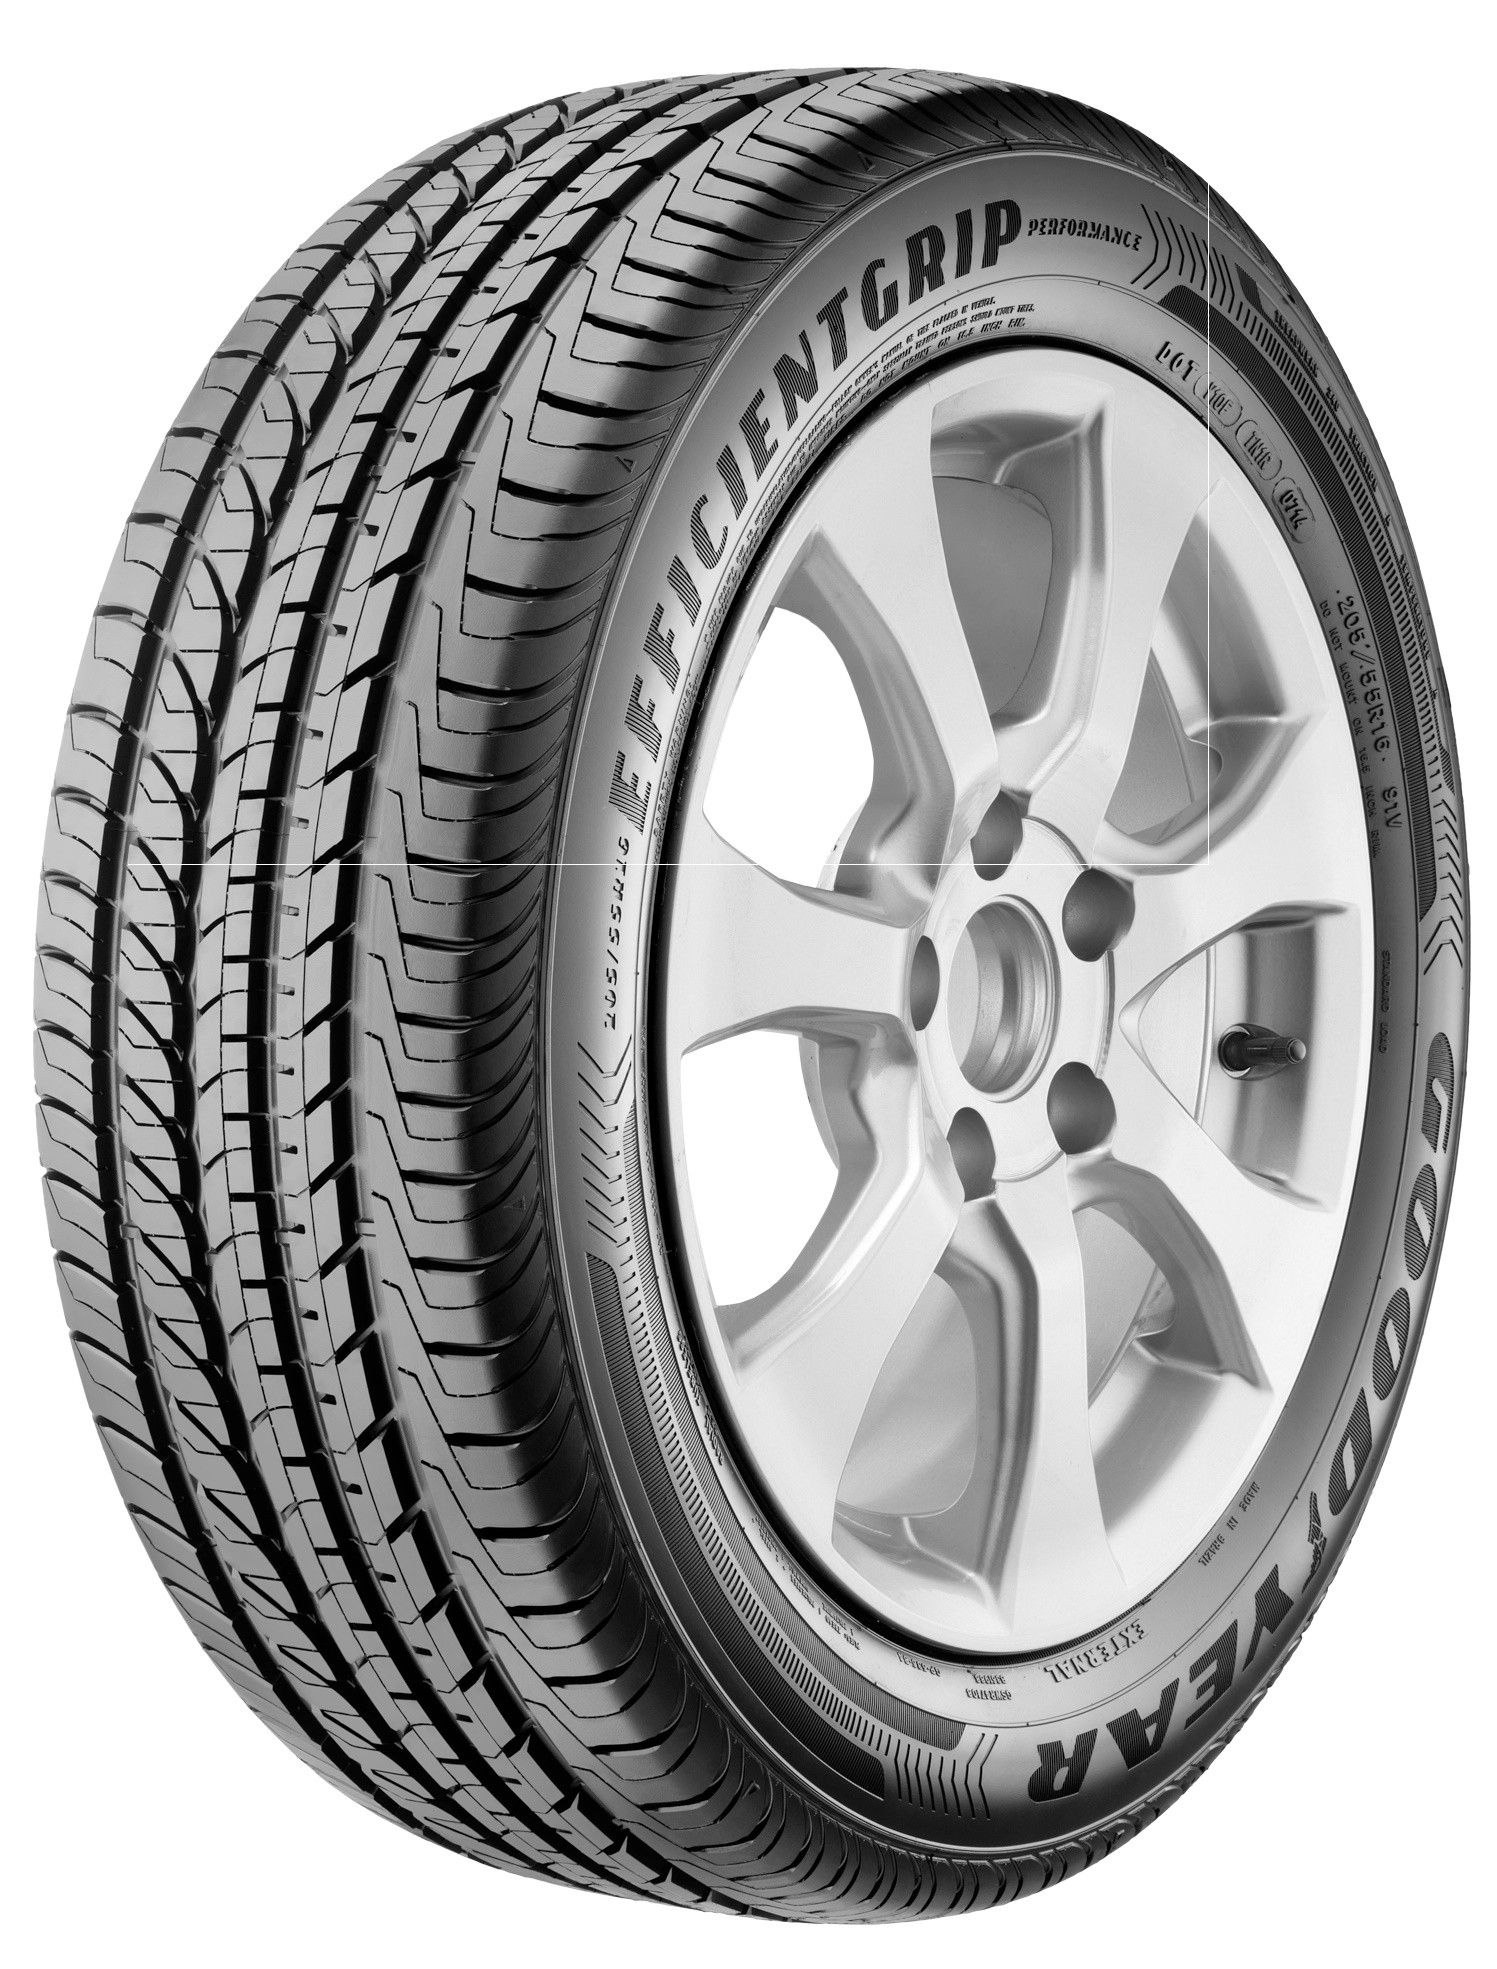 pneu goodyear fluence